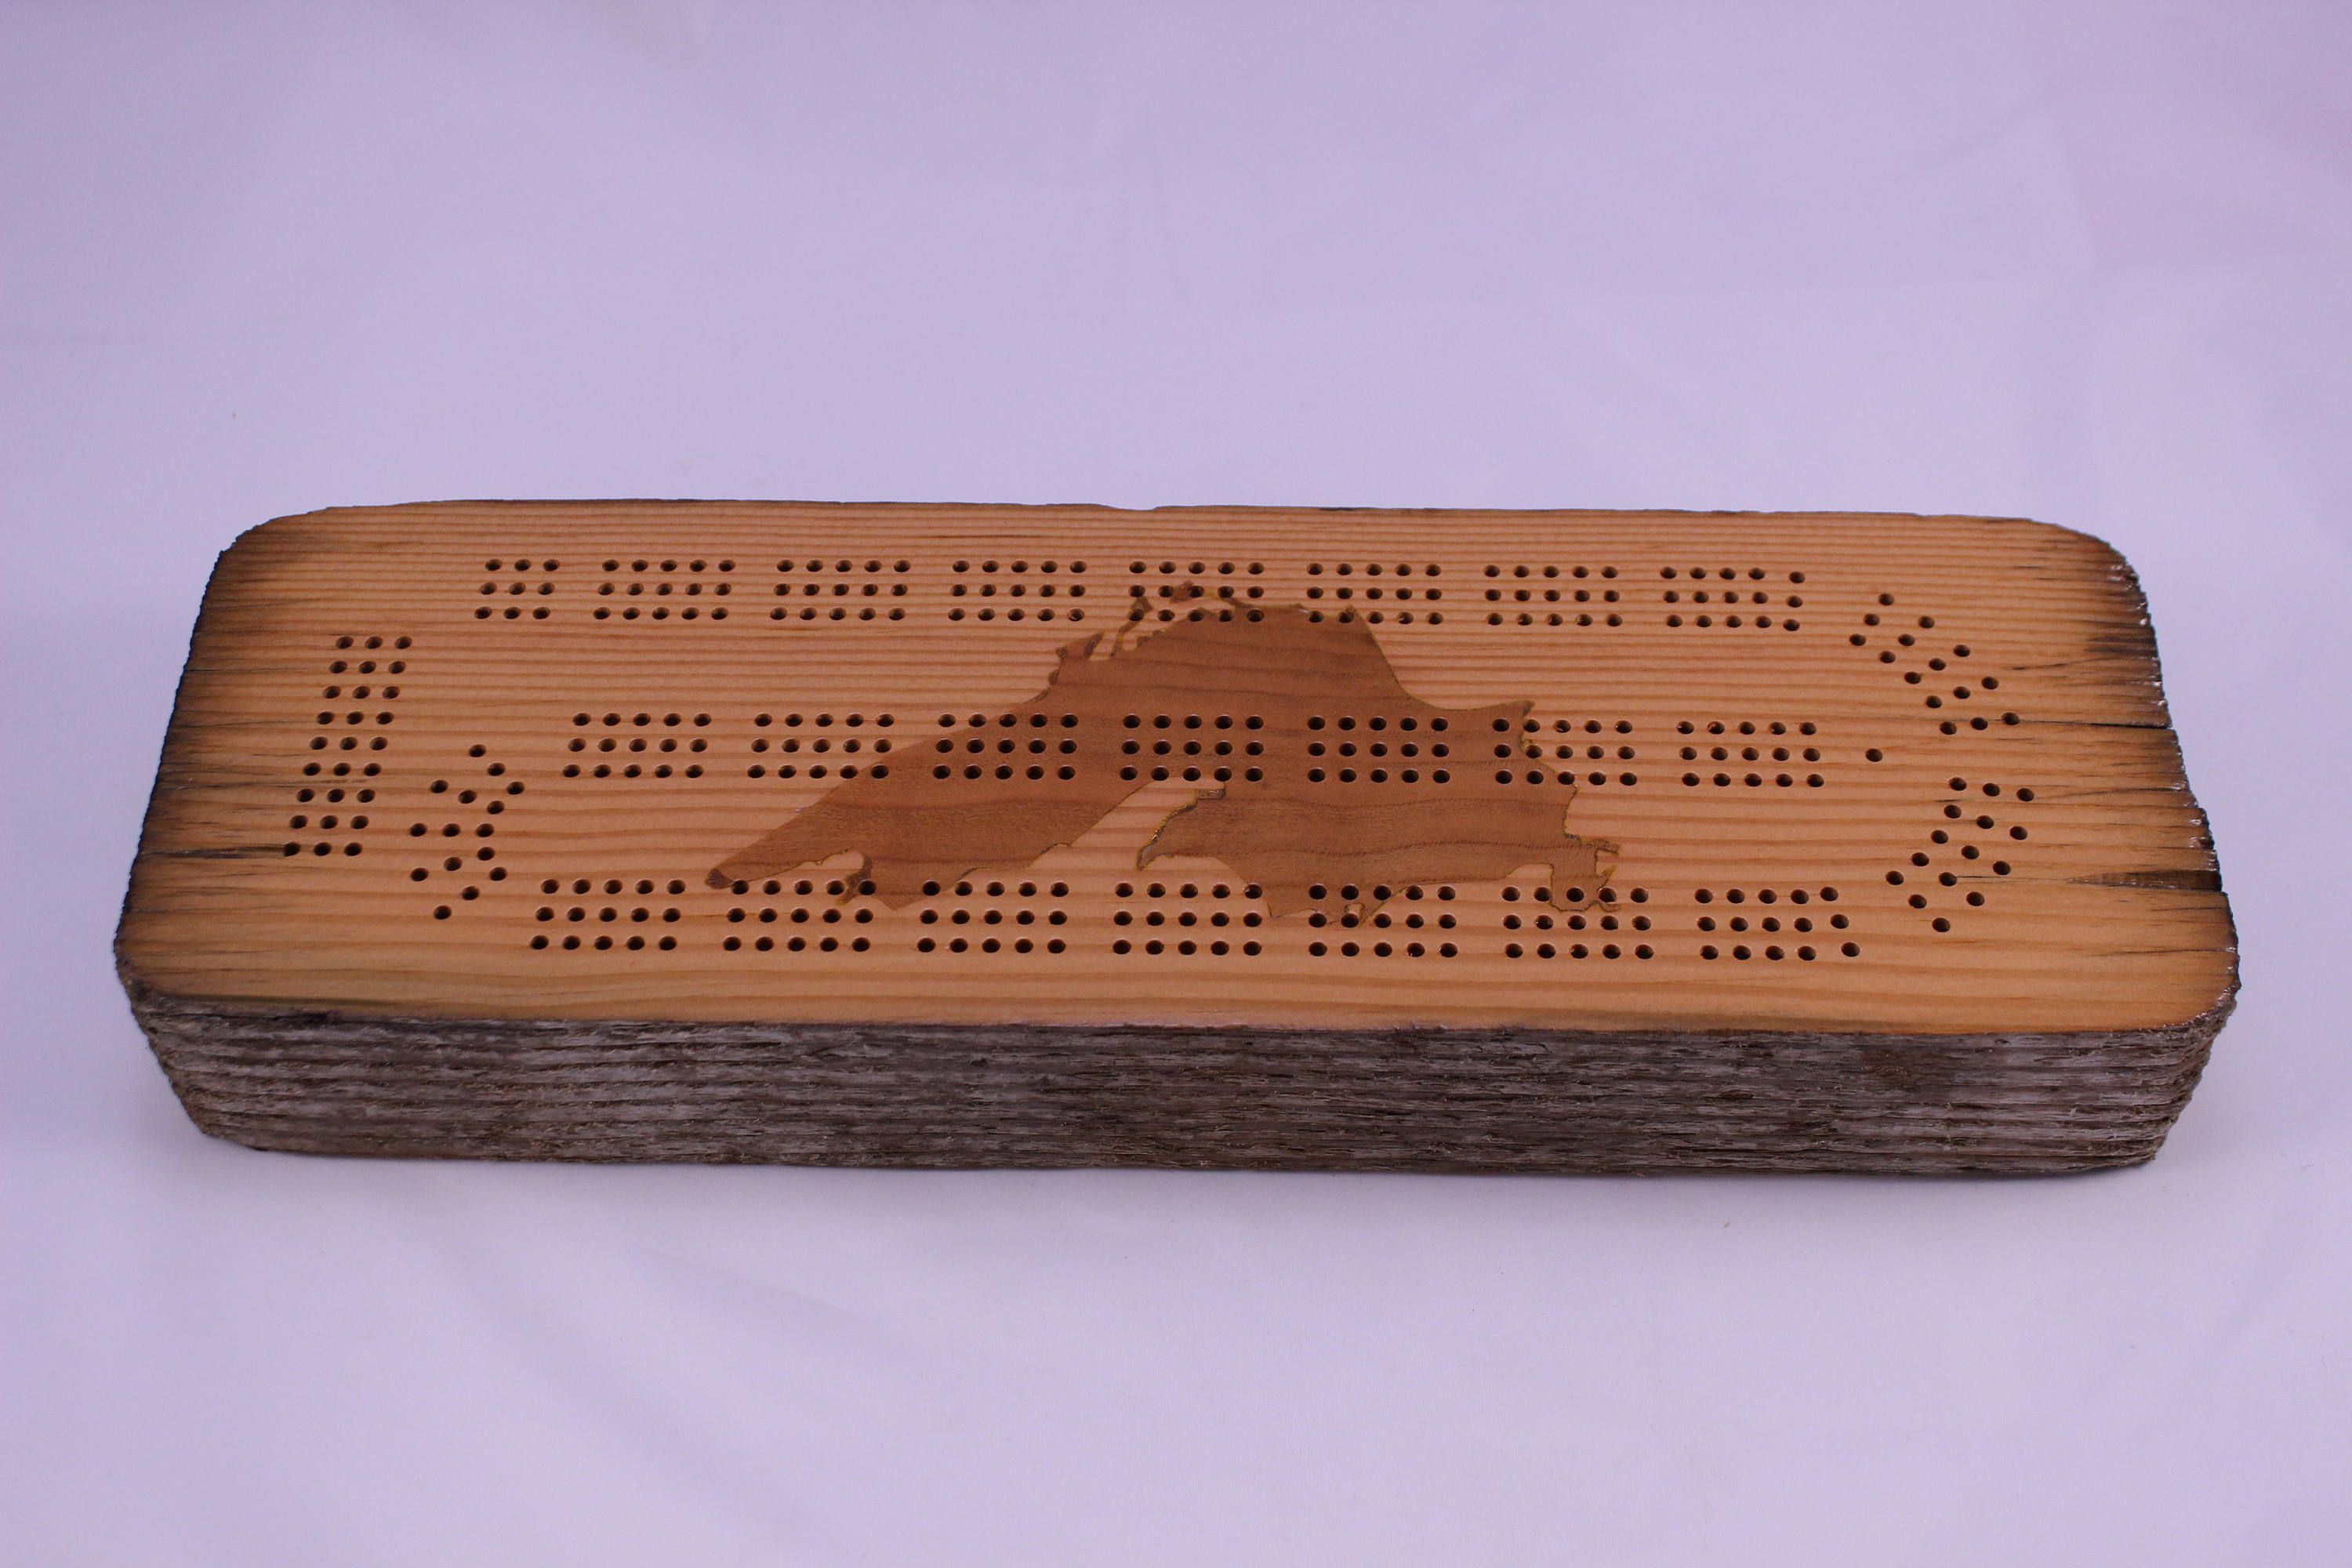 Lake Superior Driftwood Cribbage Board By Superiorwoodcraft On Etsy Unique Cribbage Board Cribbage Cribbage Pegs